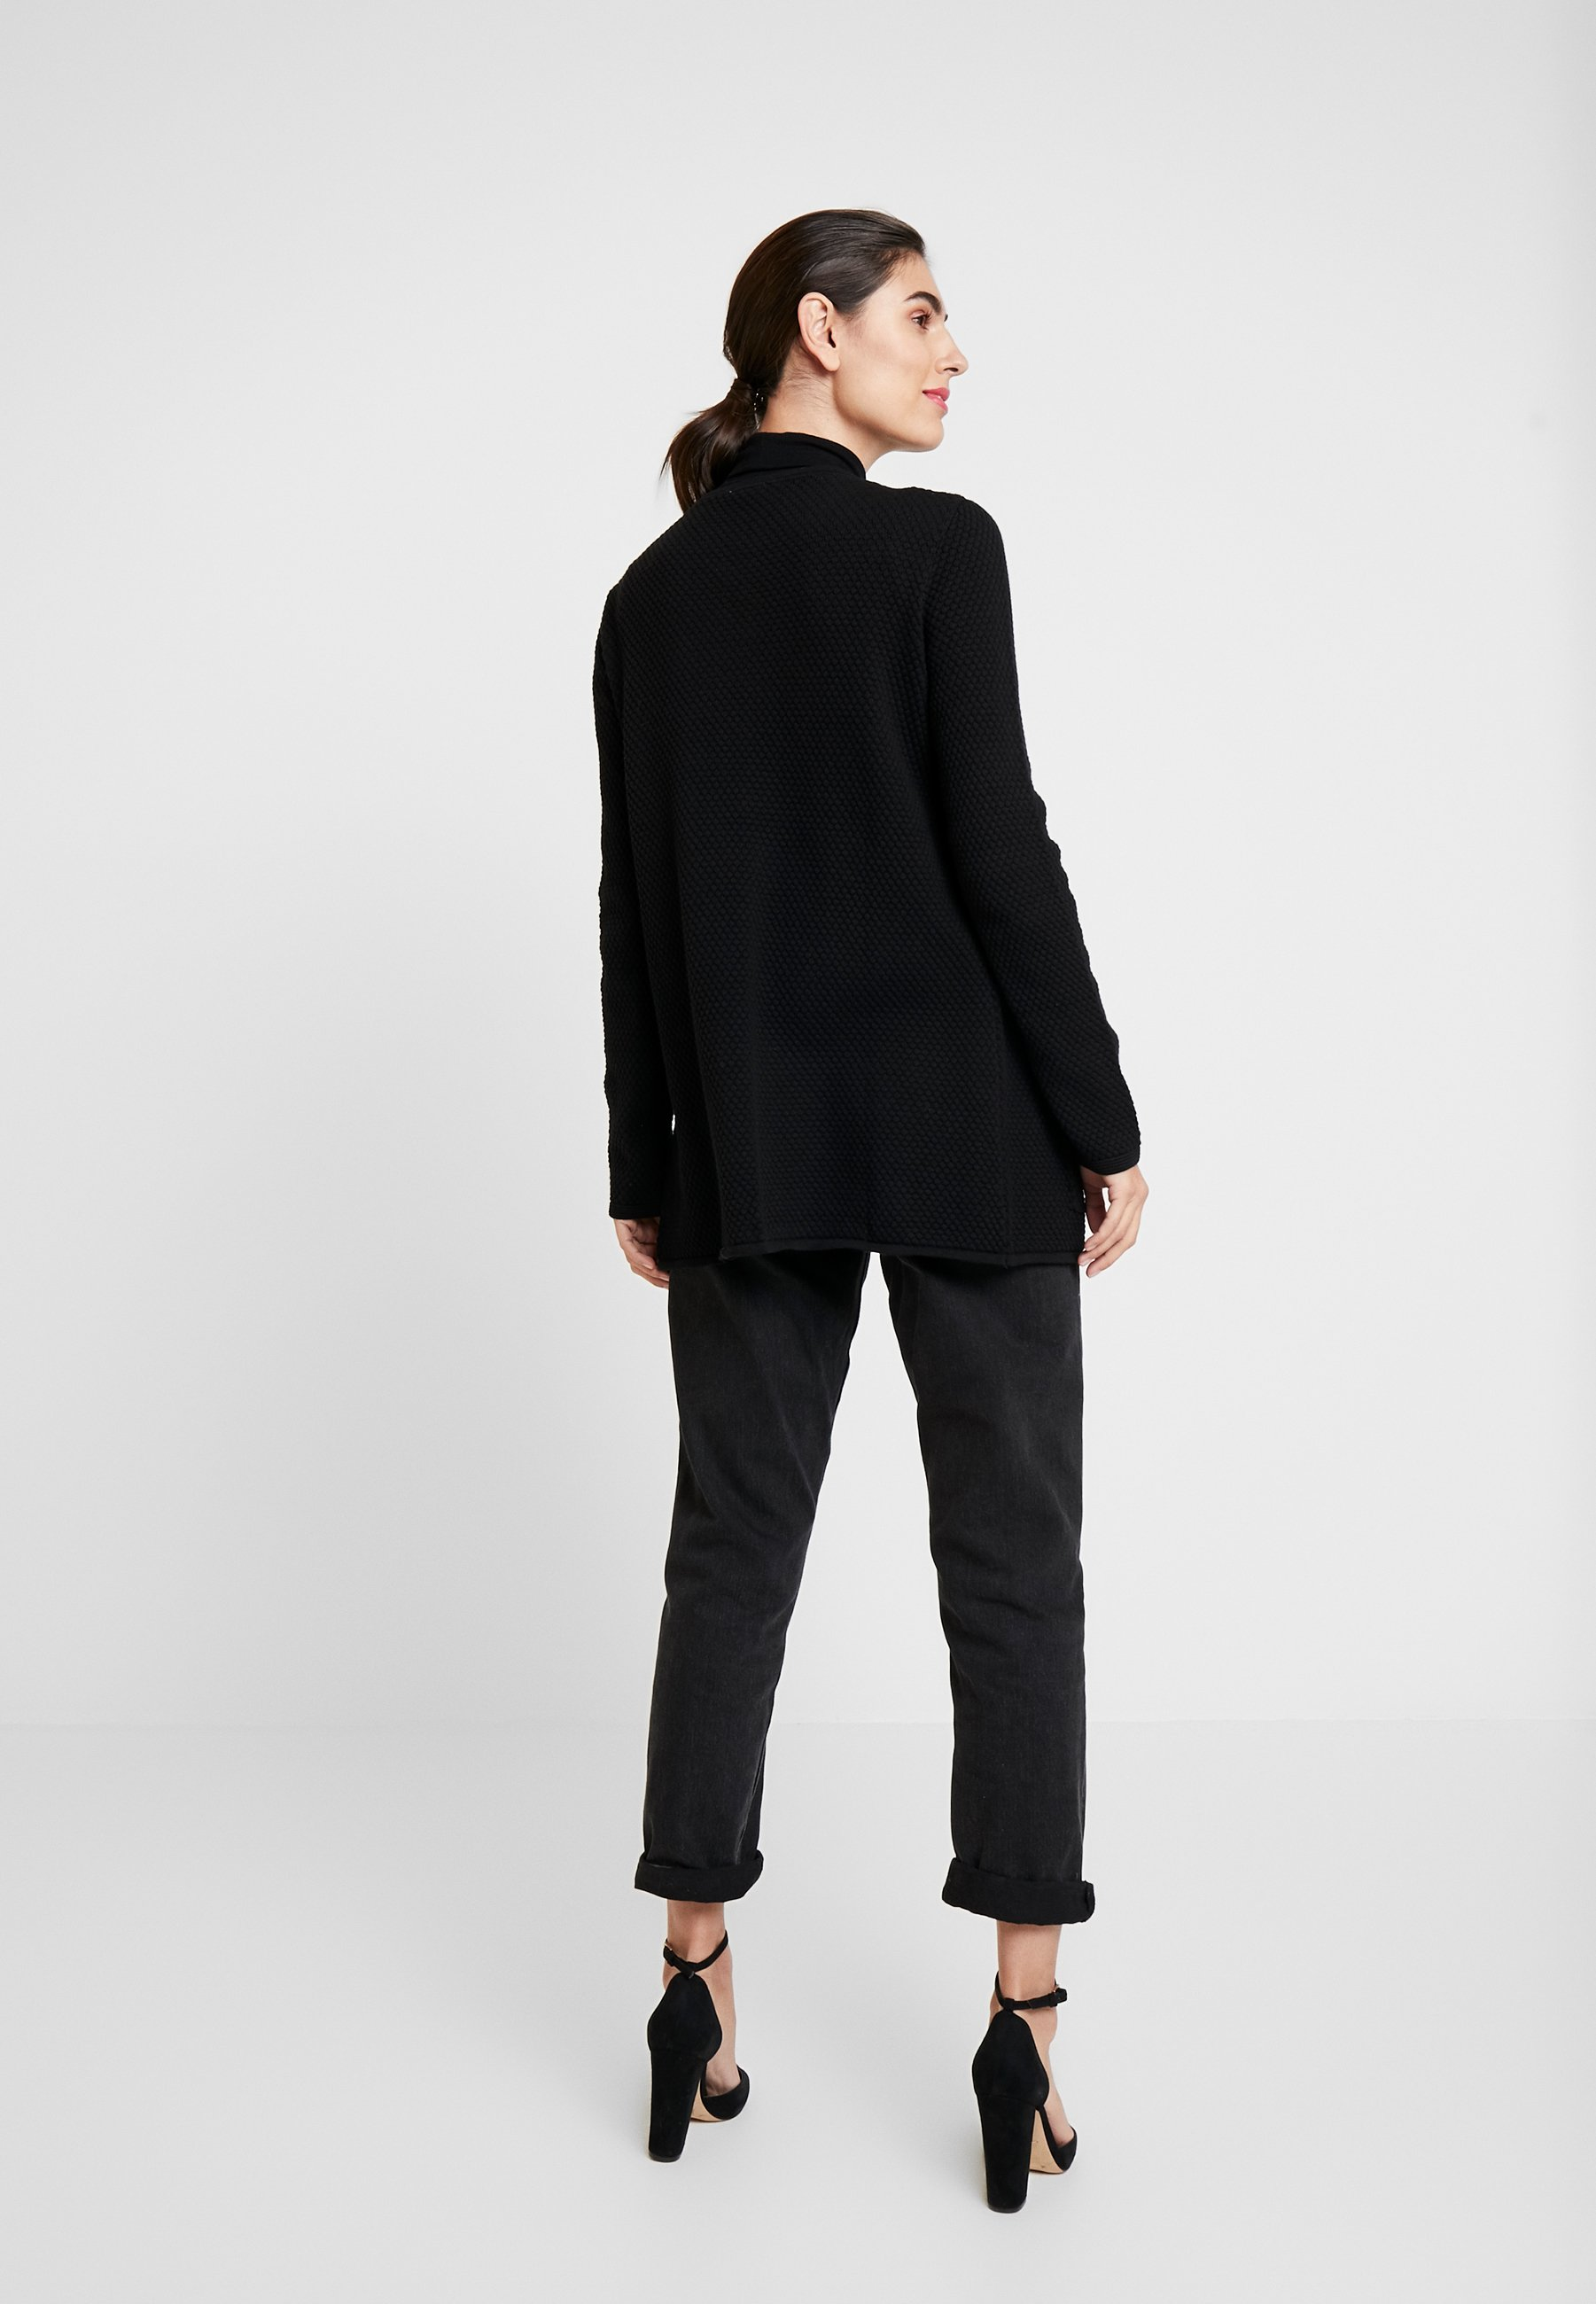 Tom Tailor Cardigan Structured - Strikjakke /cardigans Deep Black